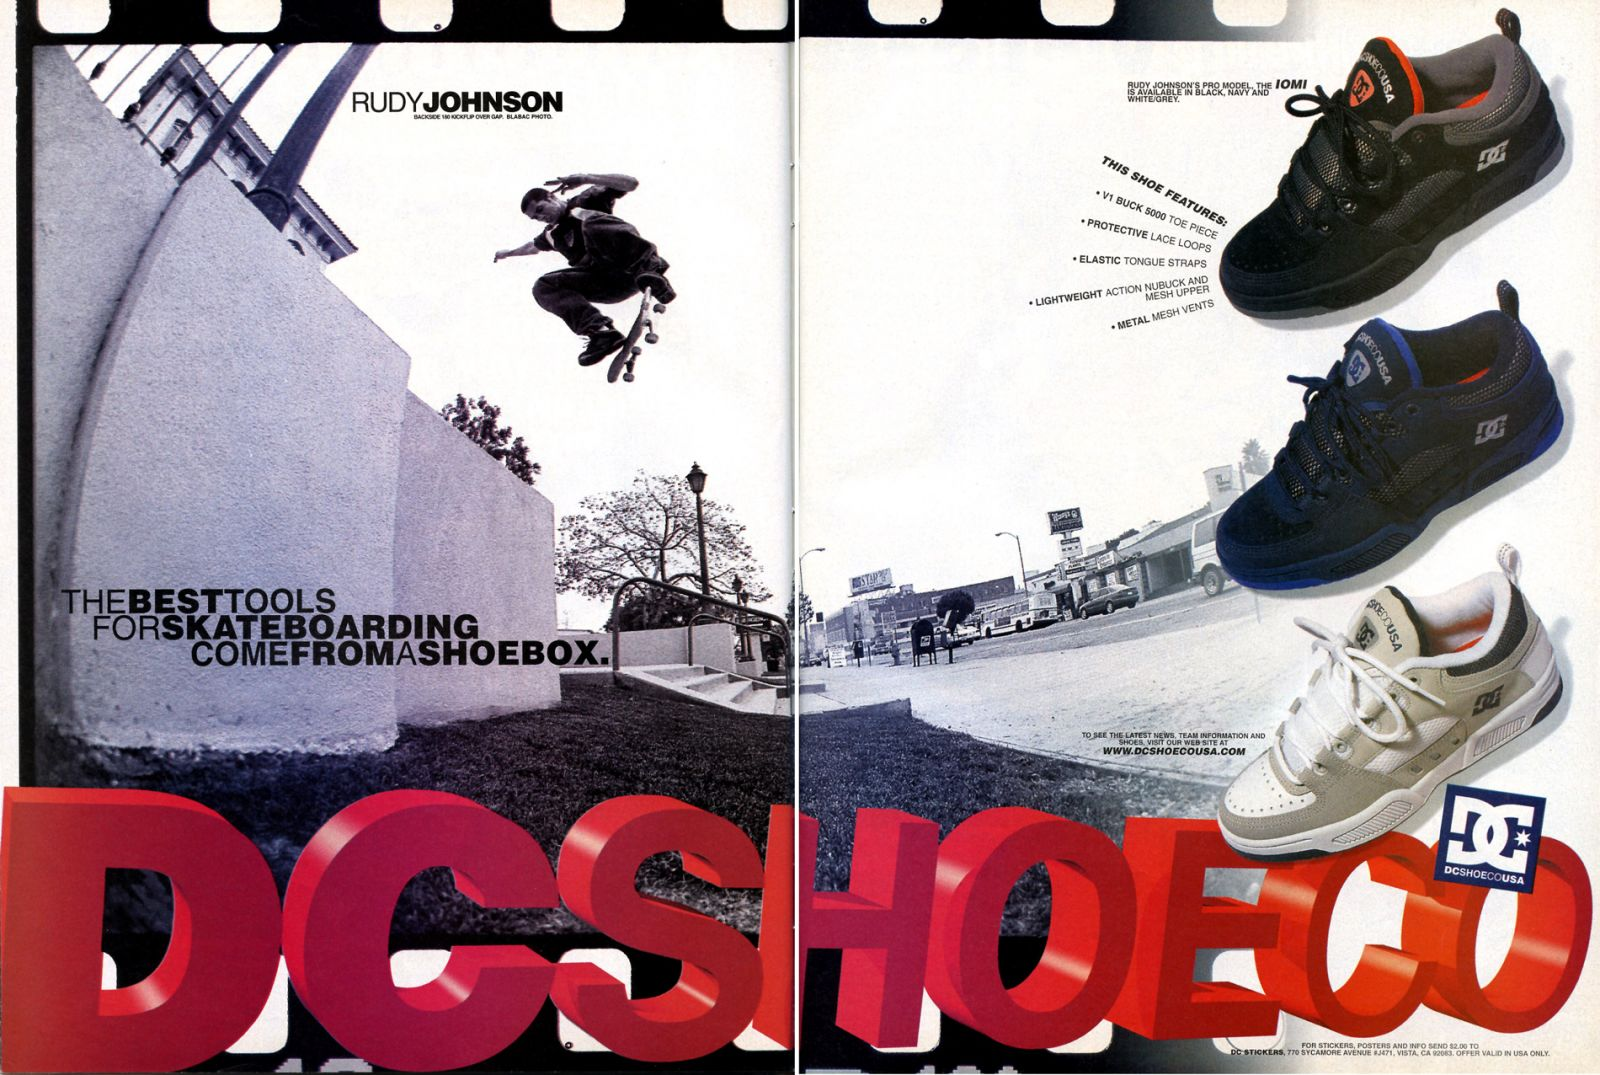 Vintage Ad Special Feature: Skate Shoes | Sole Collector